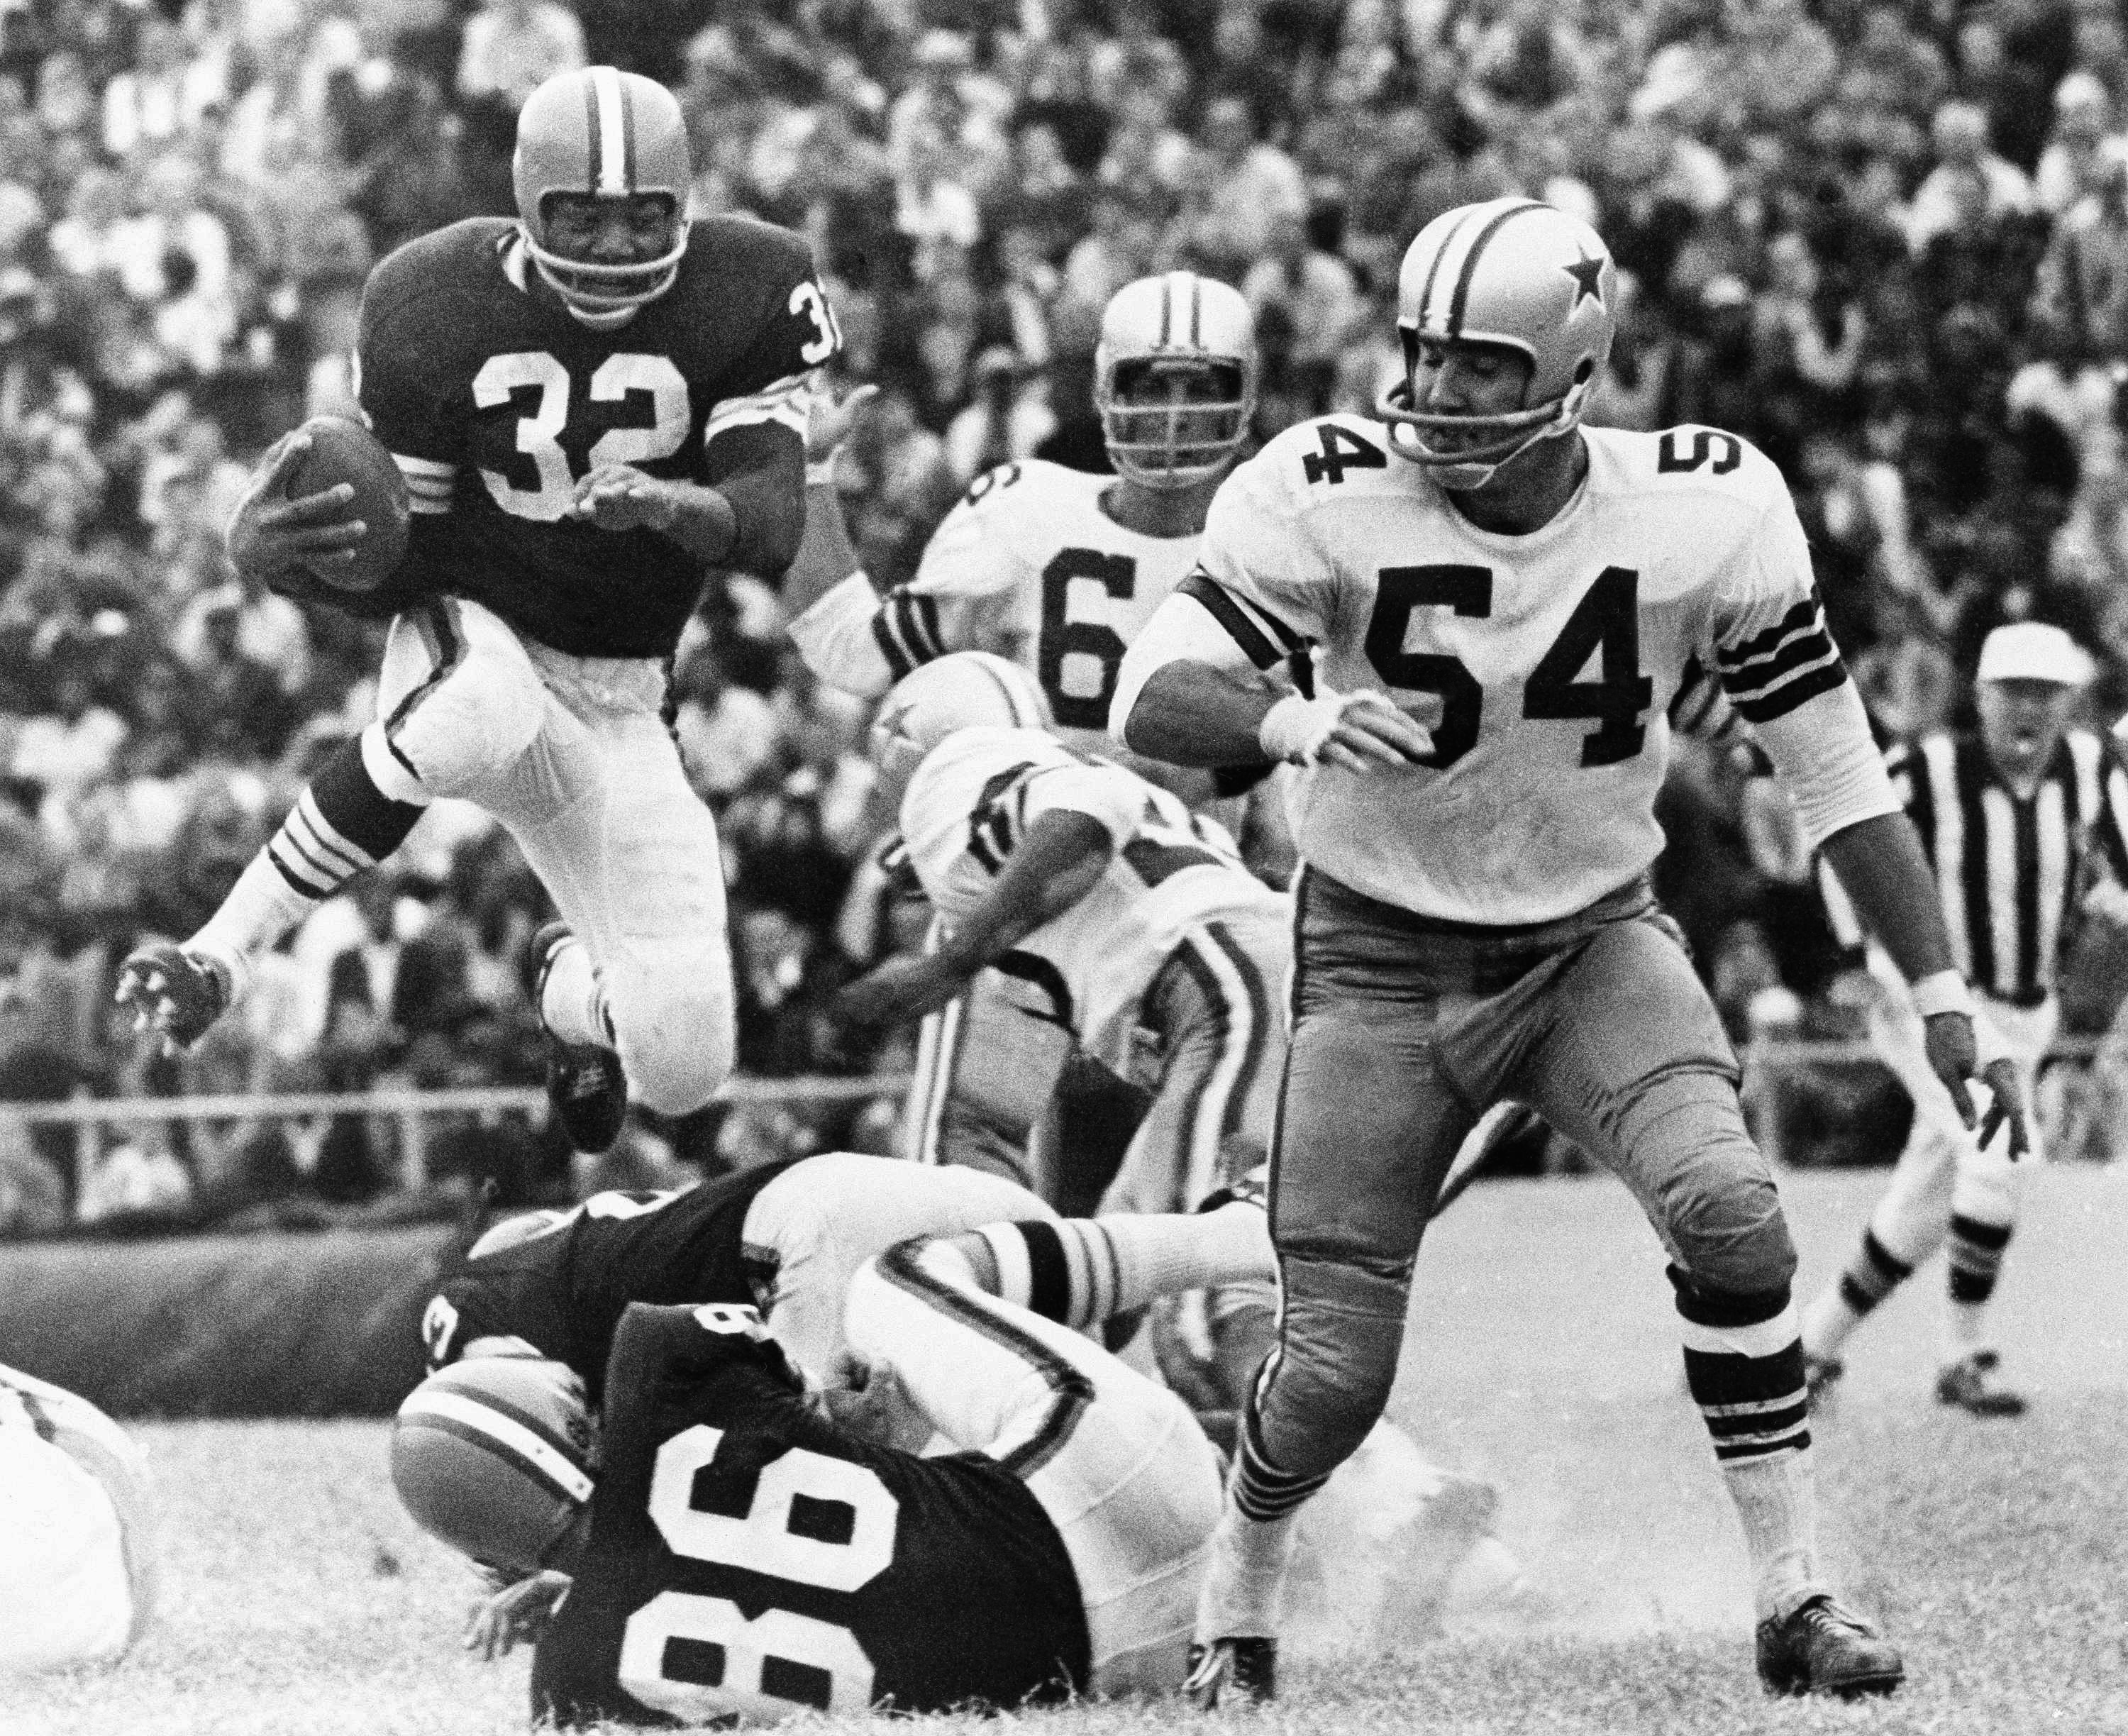 Cleveland Browns fullback, Jim Brown leaps for a gain over right tackle and fellow player Gary Collins (86) in third quarter, in their game with the Dallas Cowboys in Dallas on Oct. 19, 1964. Watching are Cowboy players George Andrie (66) and Chuck Howley (54). (Associated Press)